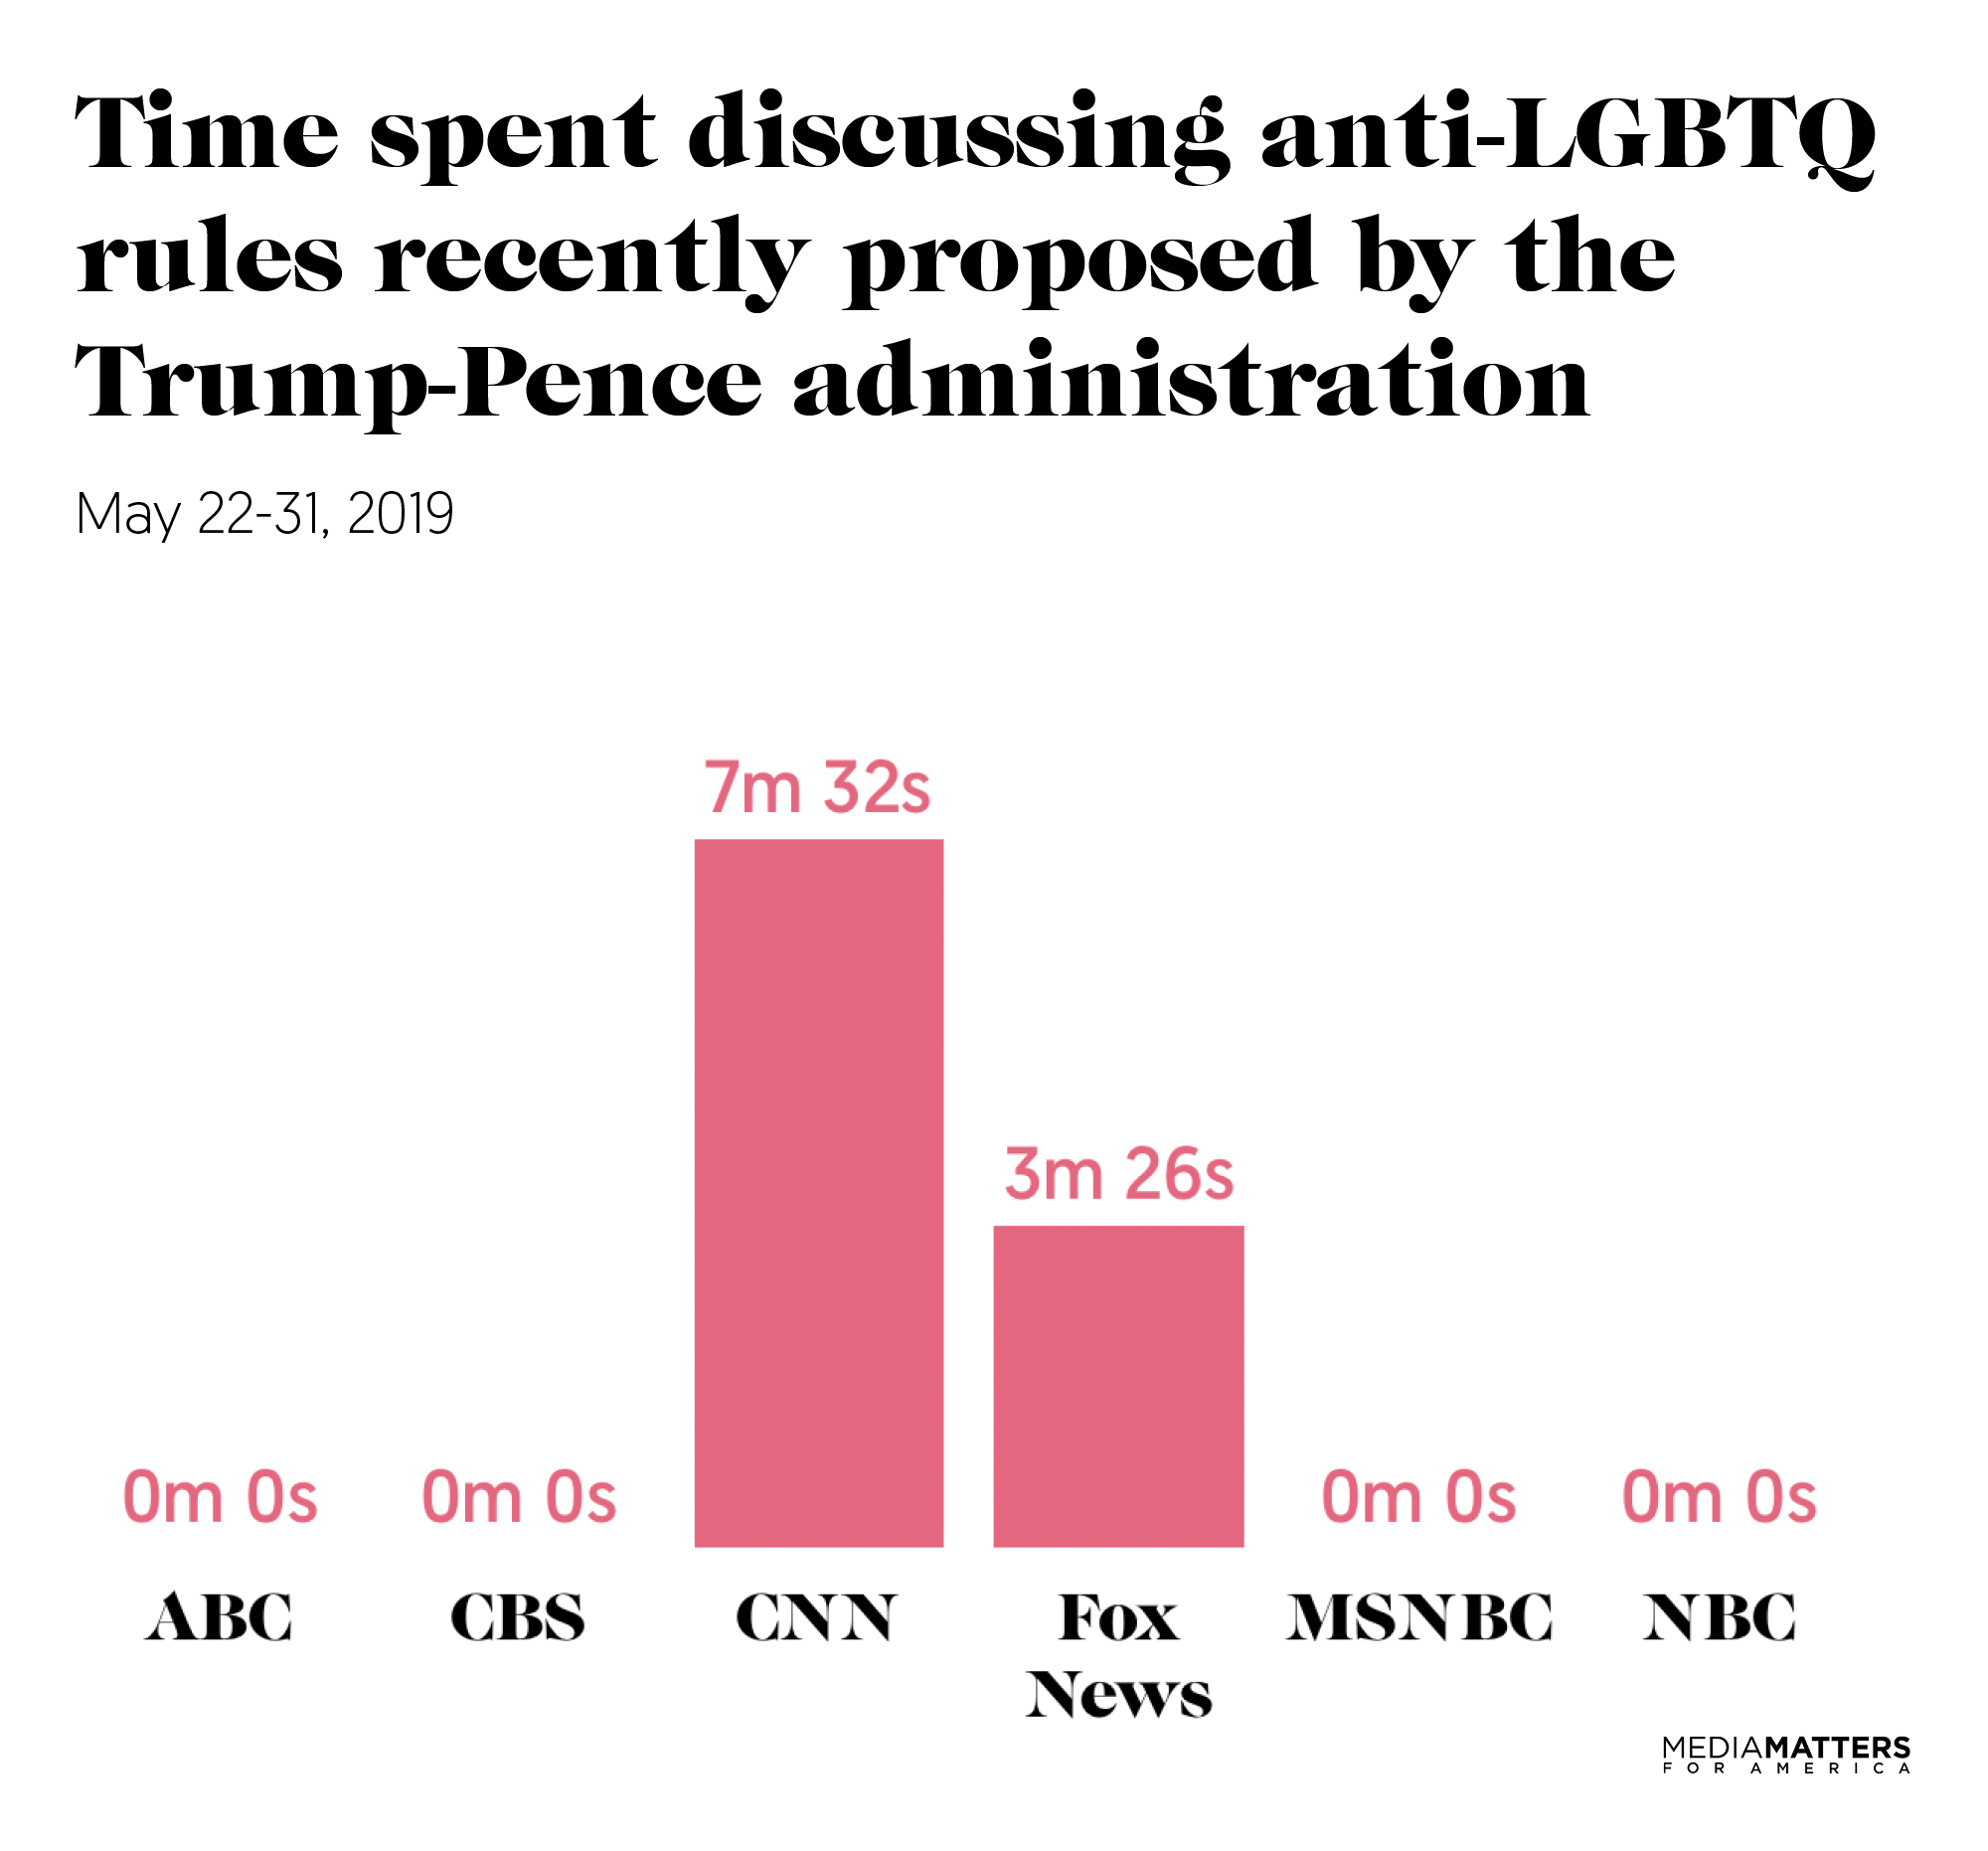 Nearly all TV news networks failed to cover the Trump-Pence